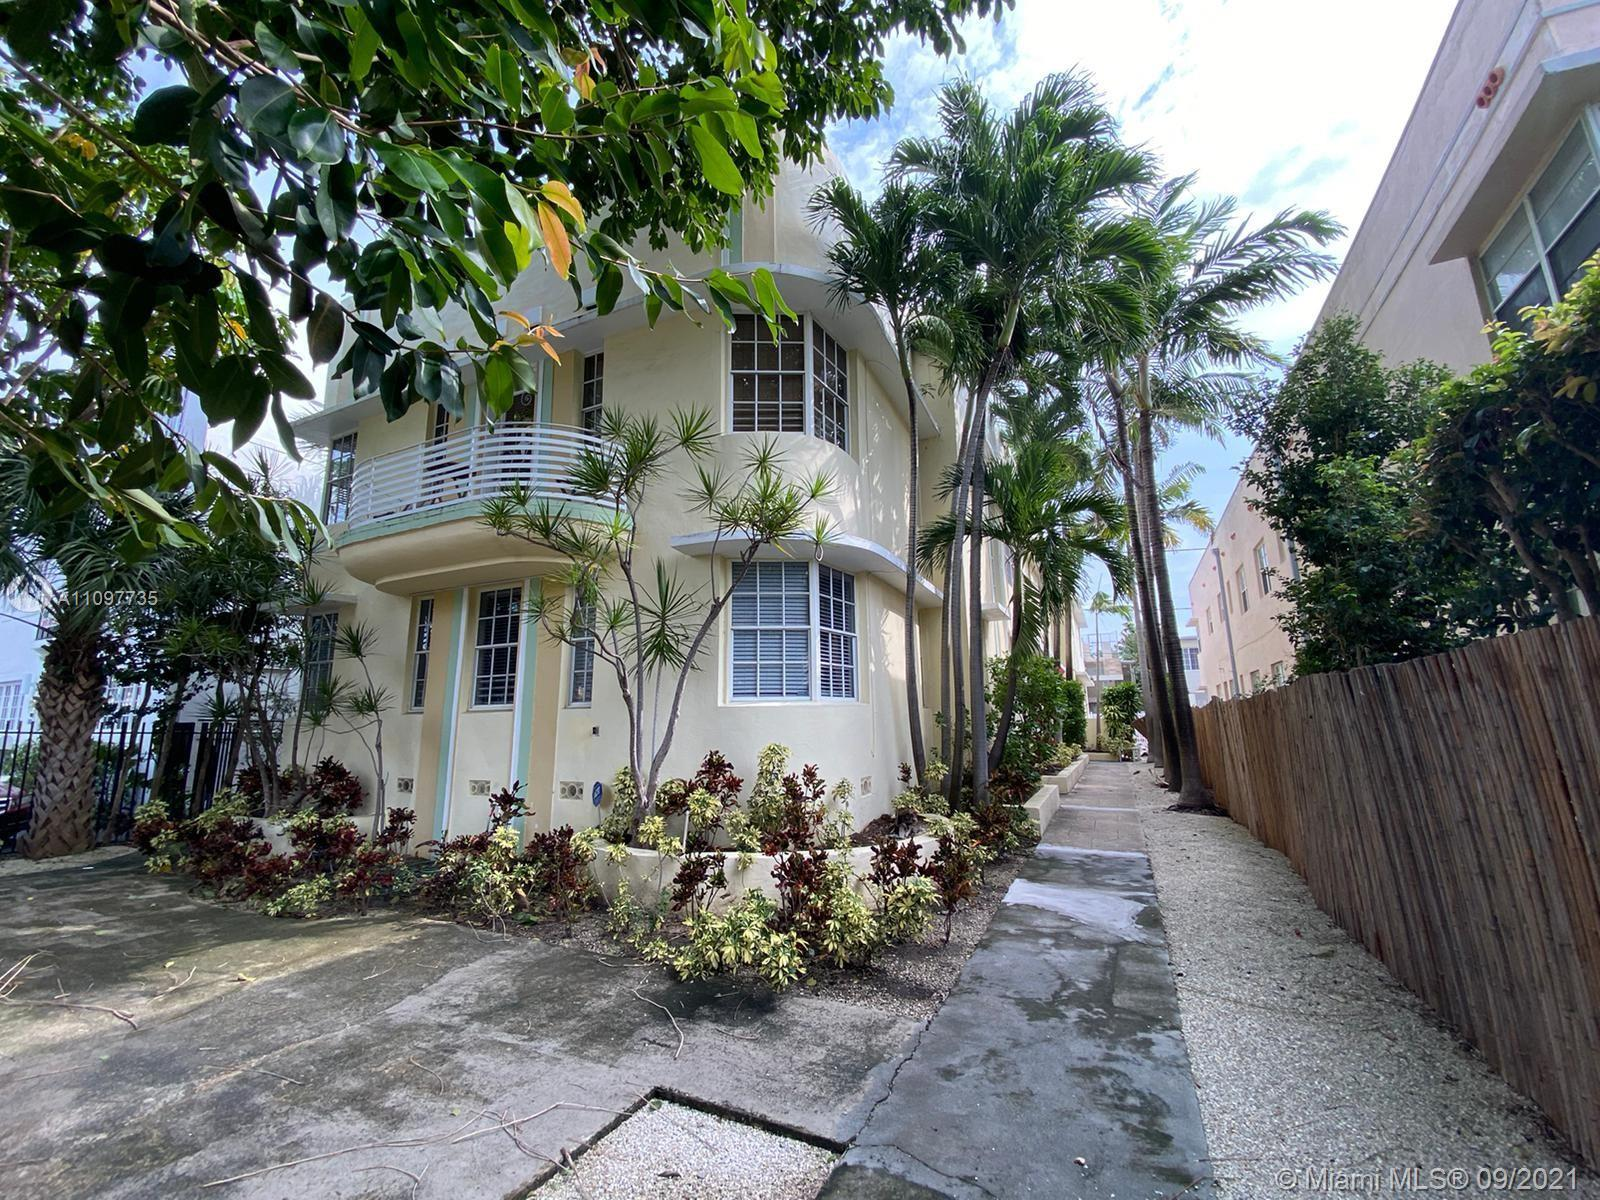 Super bright unit 2 bed/1 bath with garden view. Walk in Closet. Impact resistant windows. Clean and